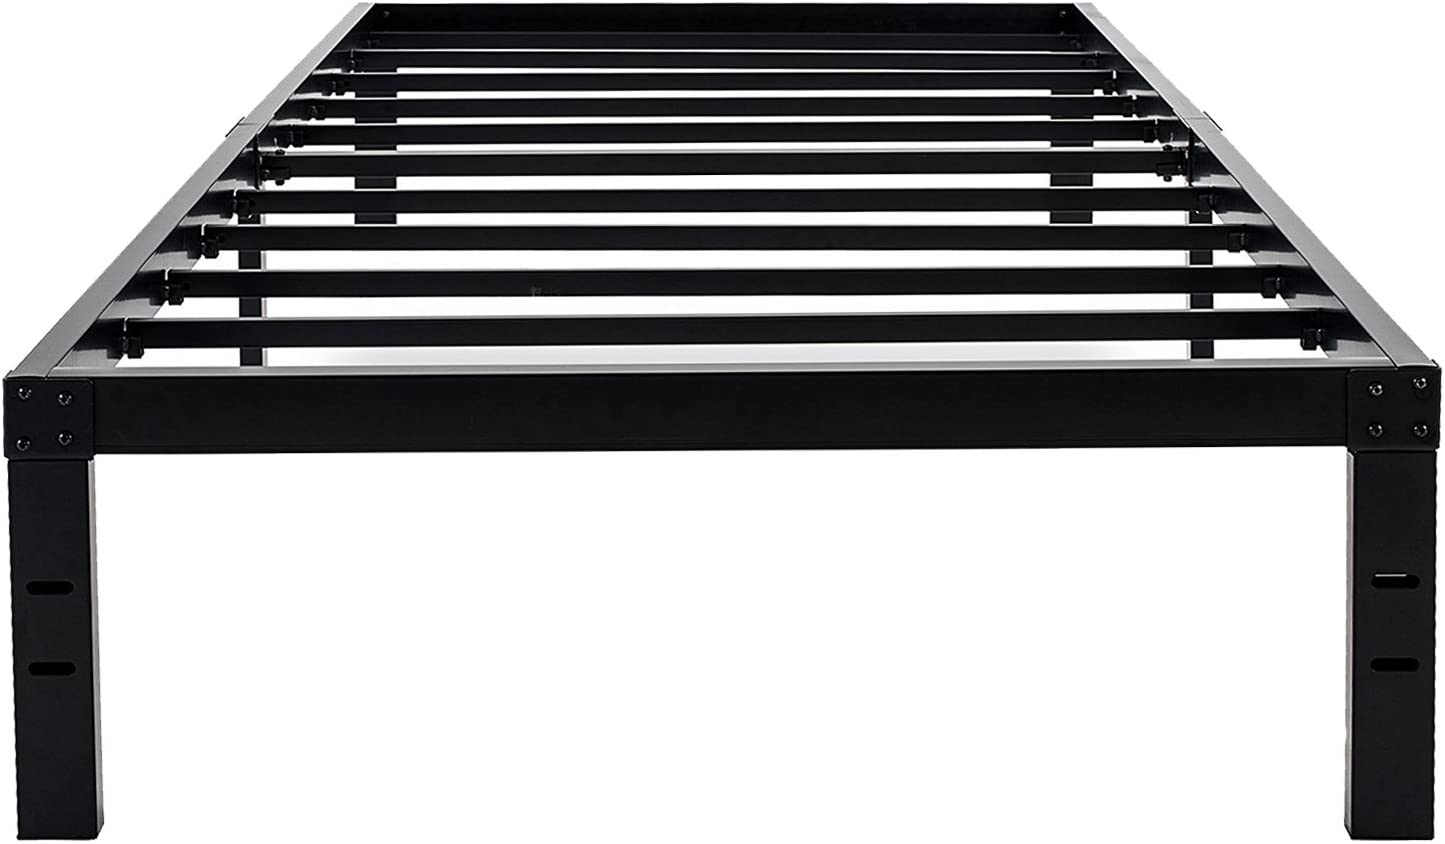 45MinST 14 Inch Reinforced Platform Bed Frame 3500lbs Heavy Duty Easy Assembly Mattress Foundation Steel Slat Noise Free No Box Spring Needed, Twin Full Queen King Cal King Twin